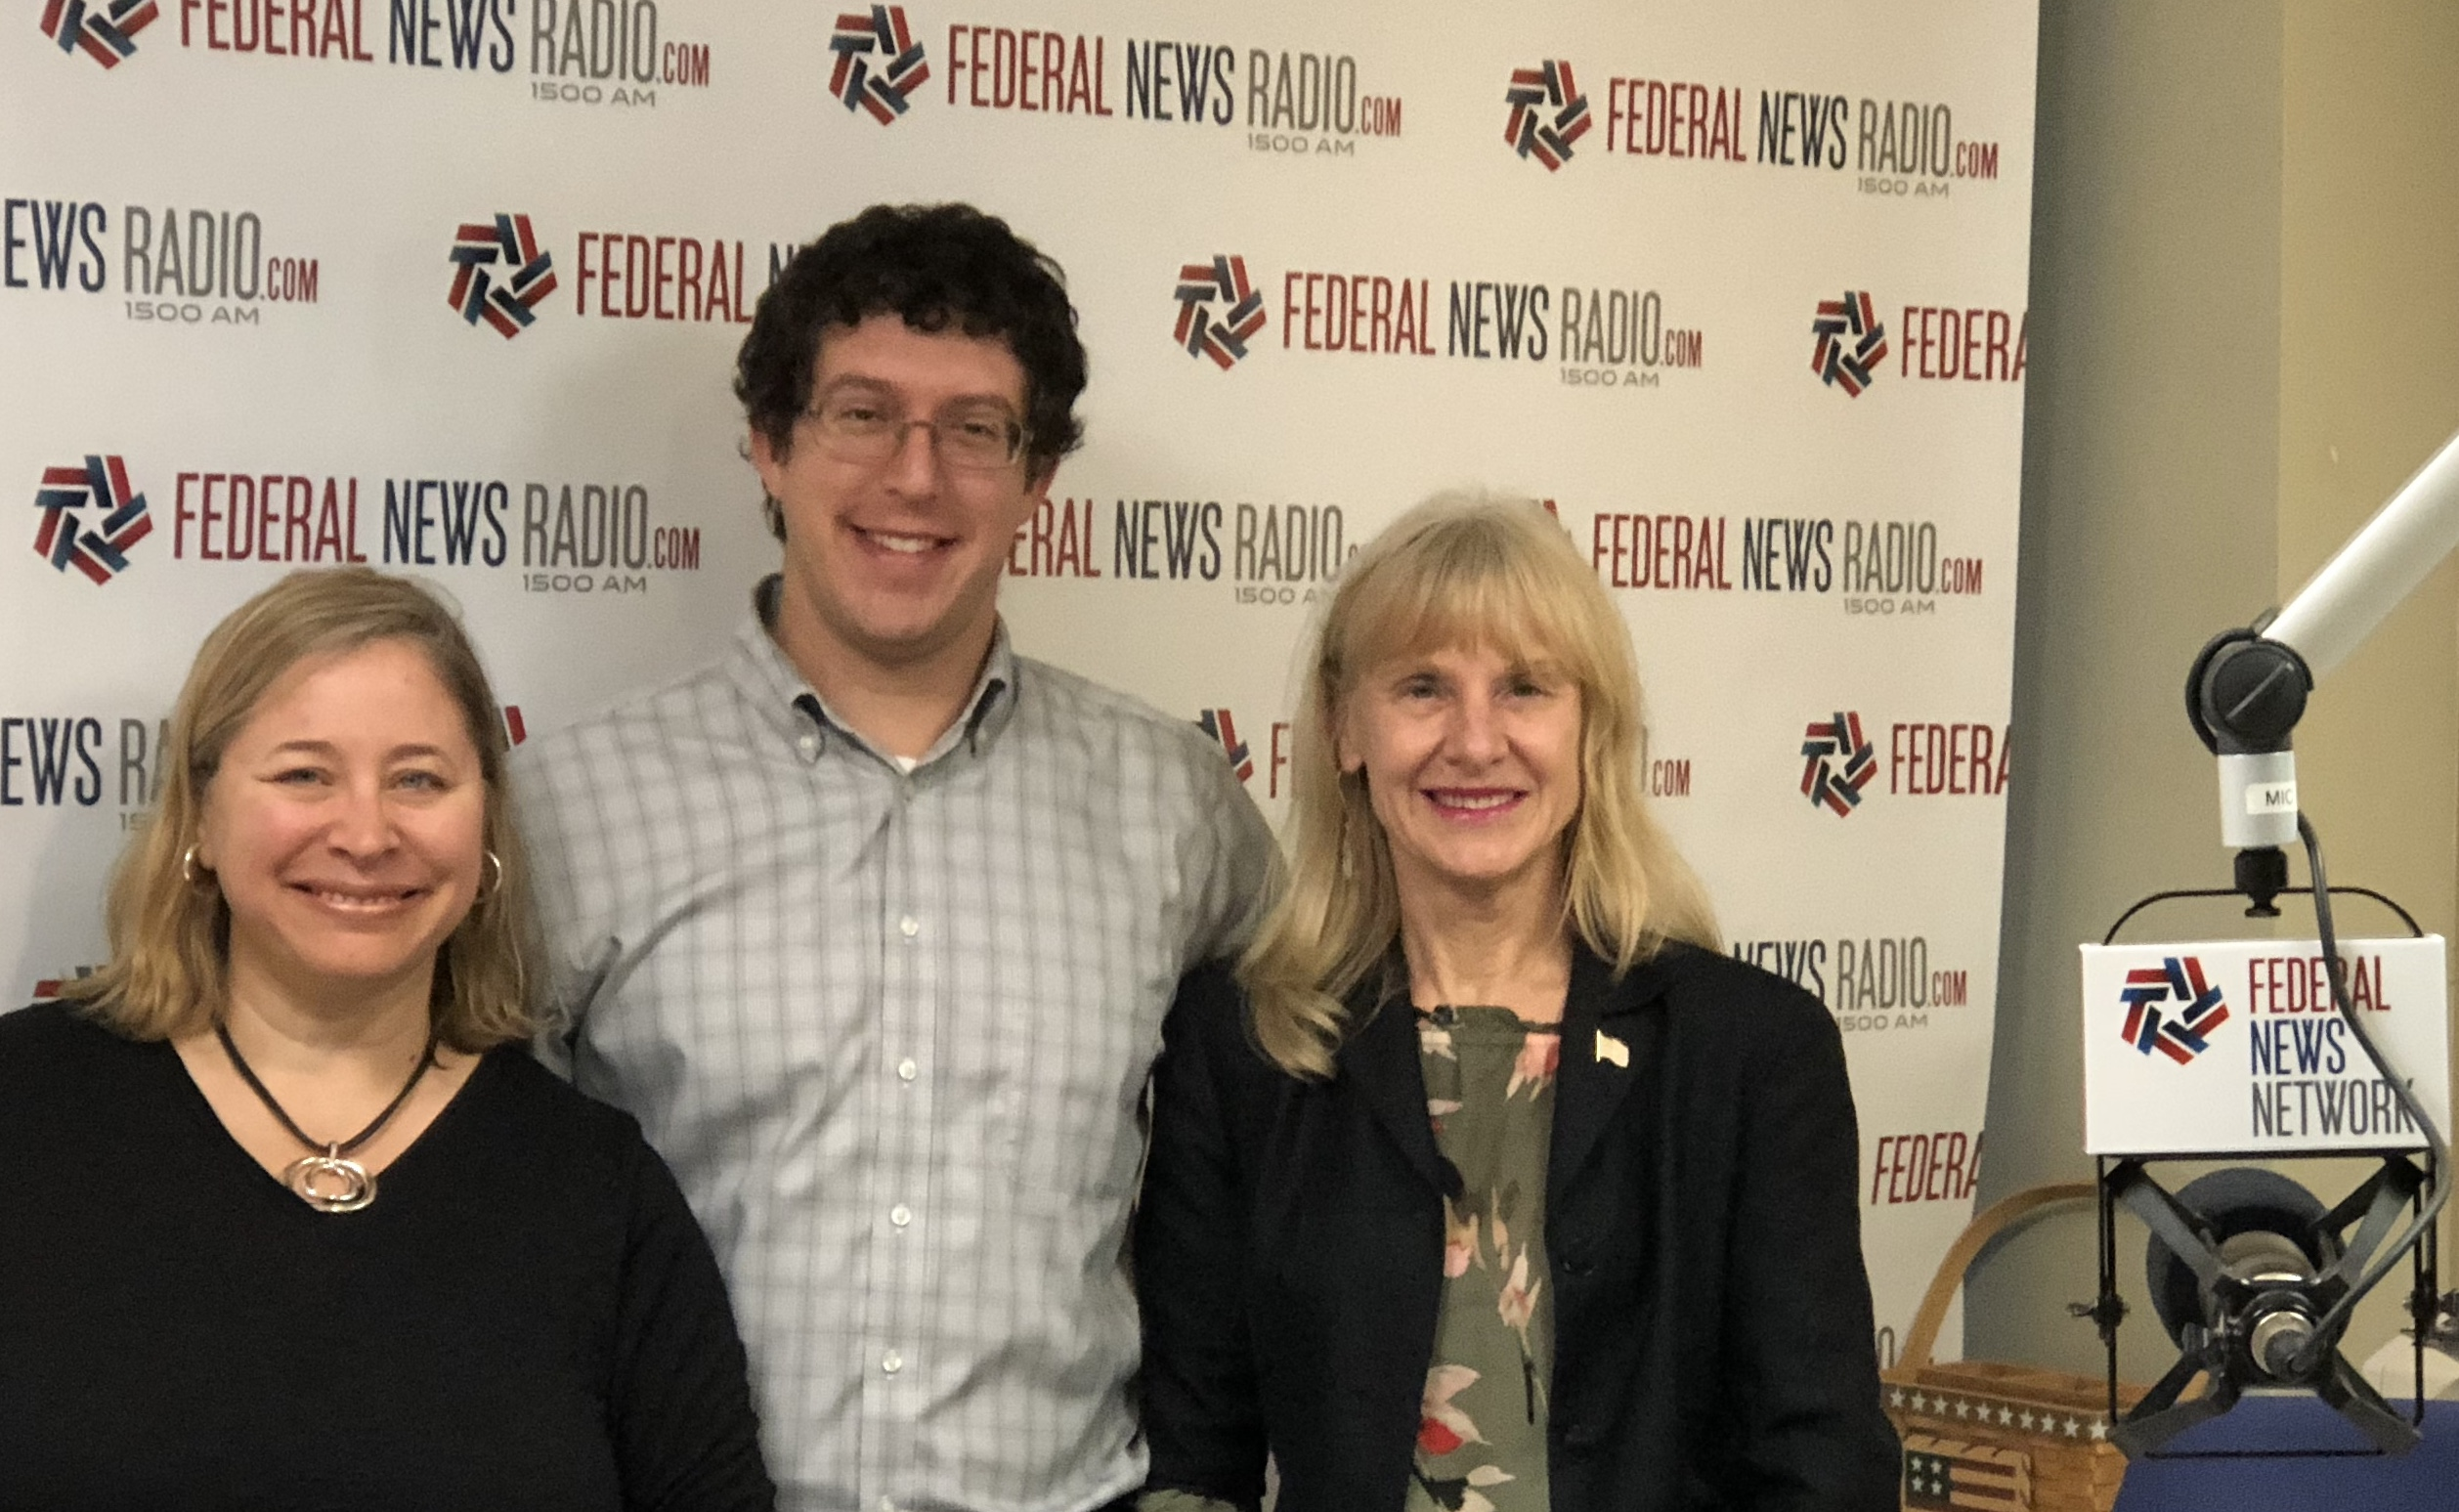 photo of FEEA's Joyce Warner, FEDTALK Host Jason Briefel, and Long Term Care Partners' Joan Melanson in front of federal news network step and repeat